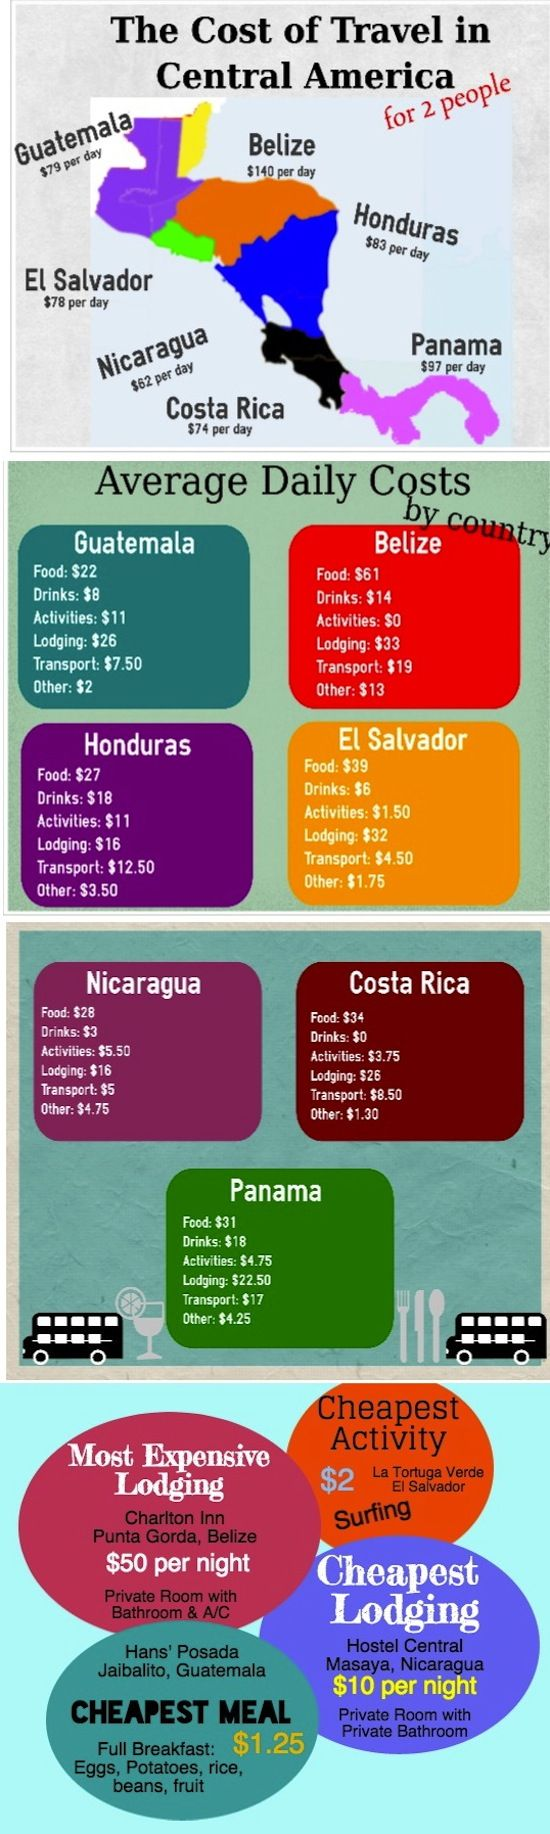 The cost of Travel in Central America